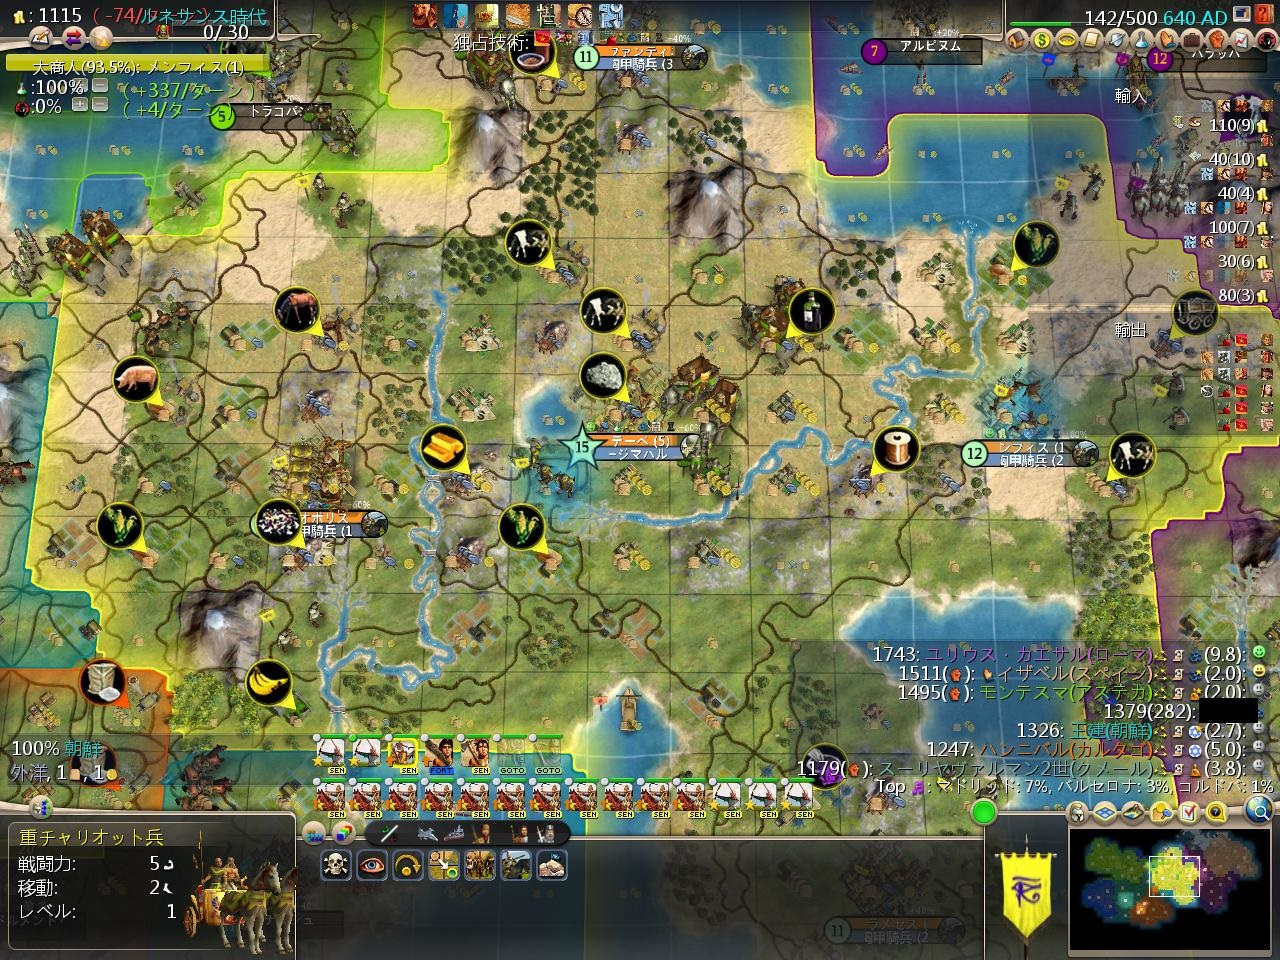 Civ4ScreenShot2140.JPG